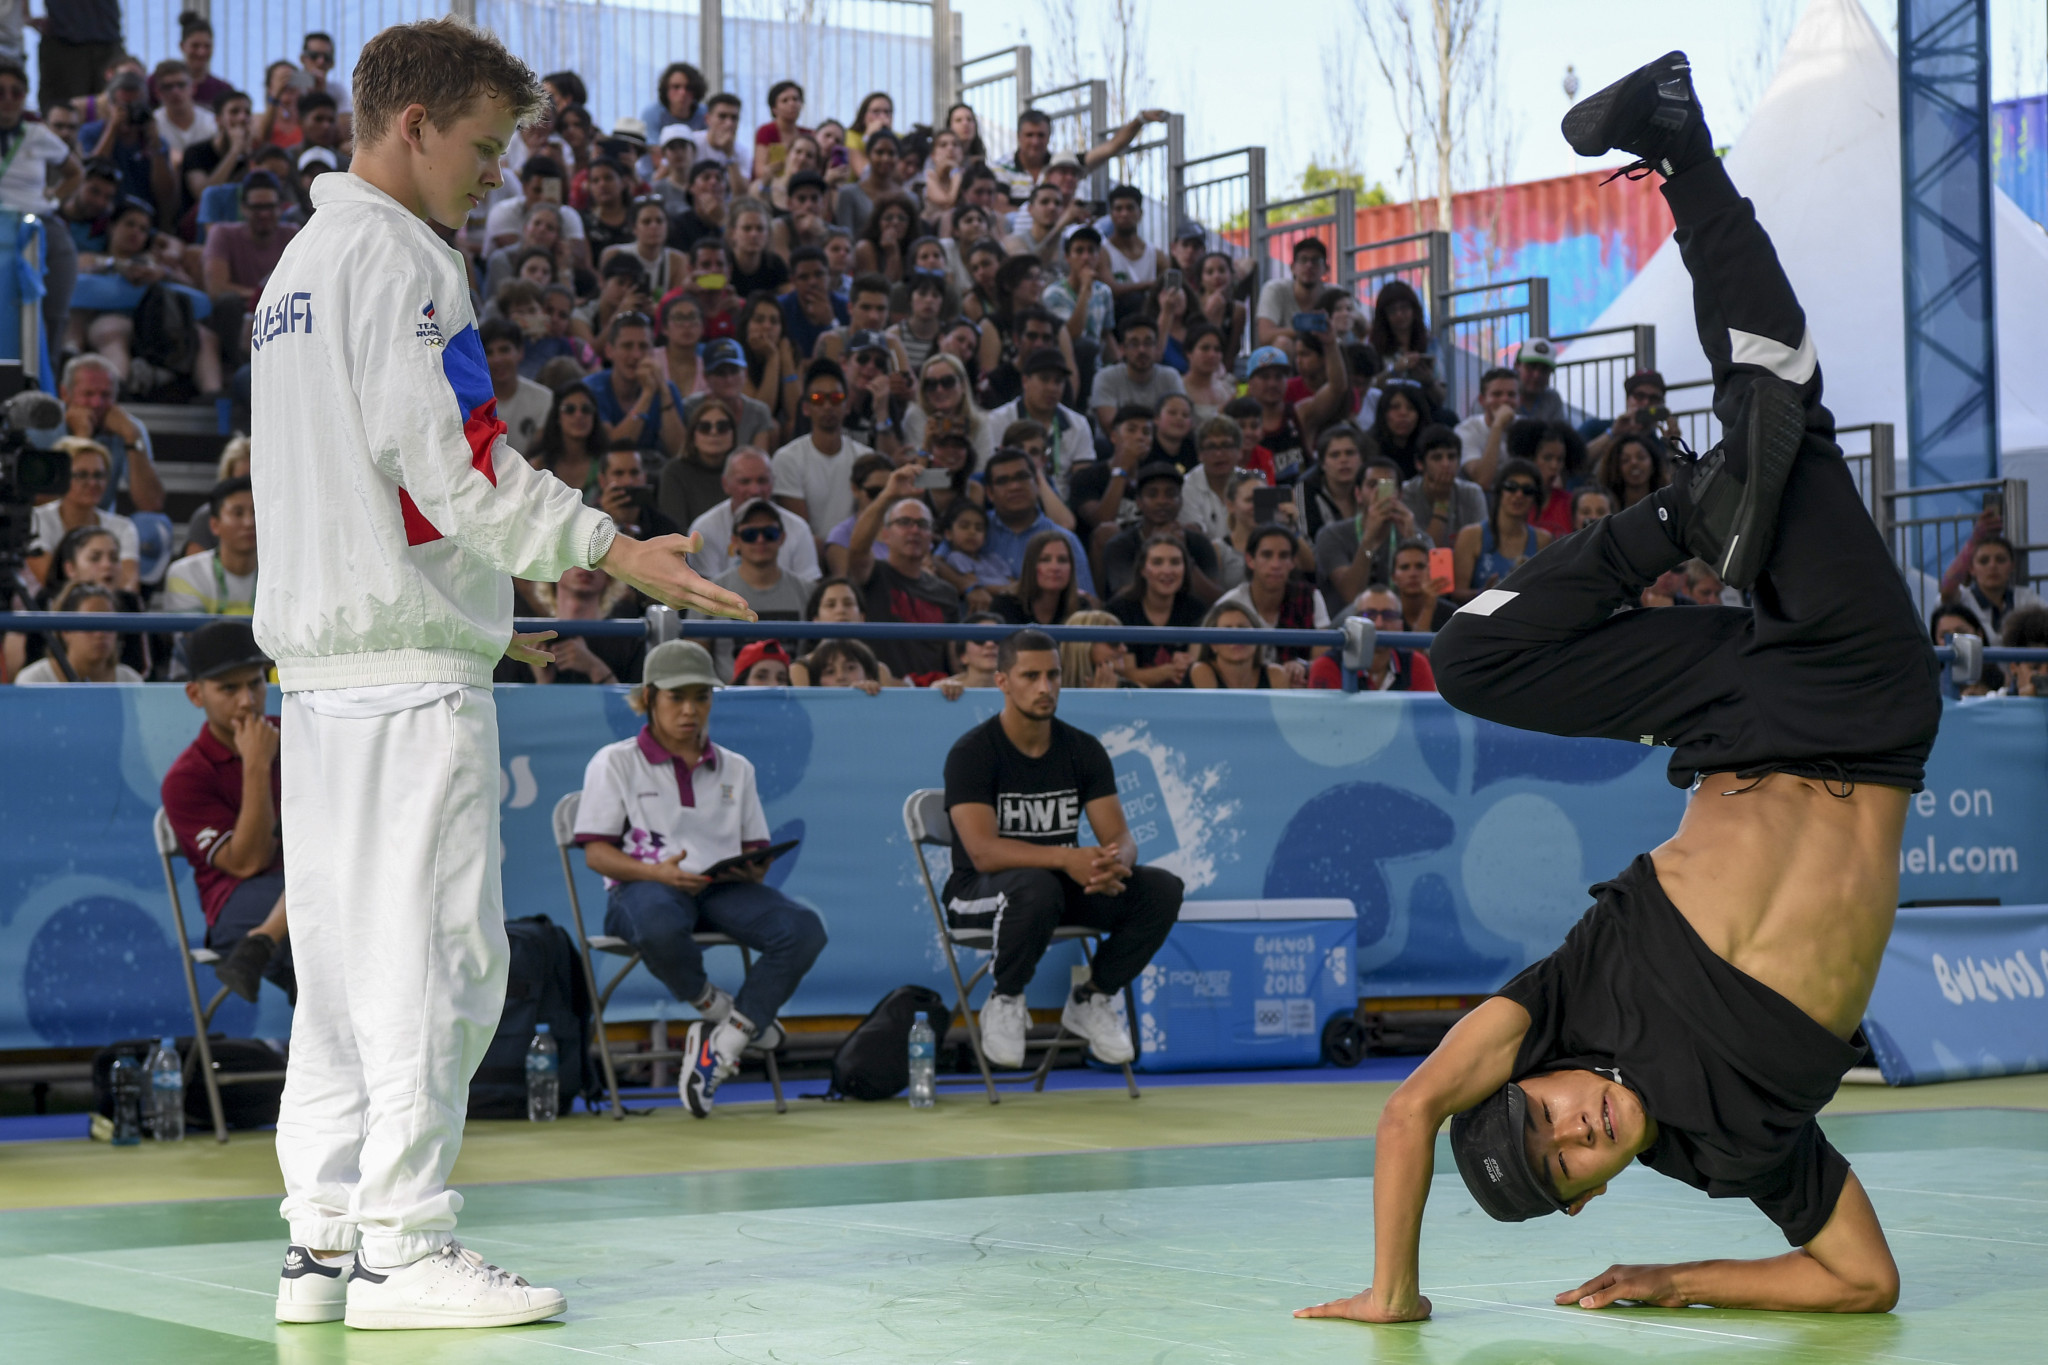 Breakdancing has emerged as a serious contender for inclusion on the Olympic programme at Paris 2024 ©Getty Images